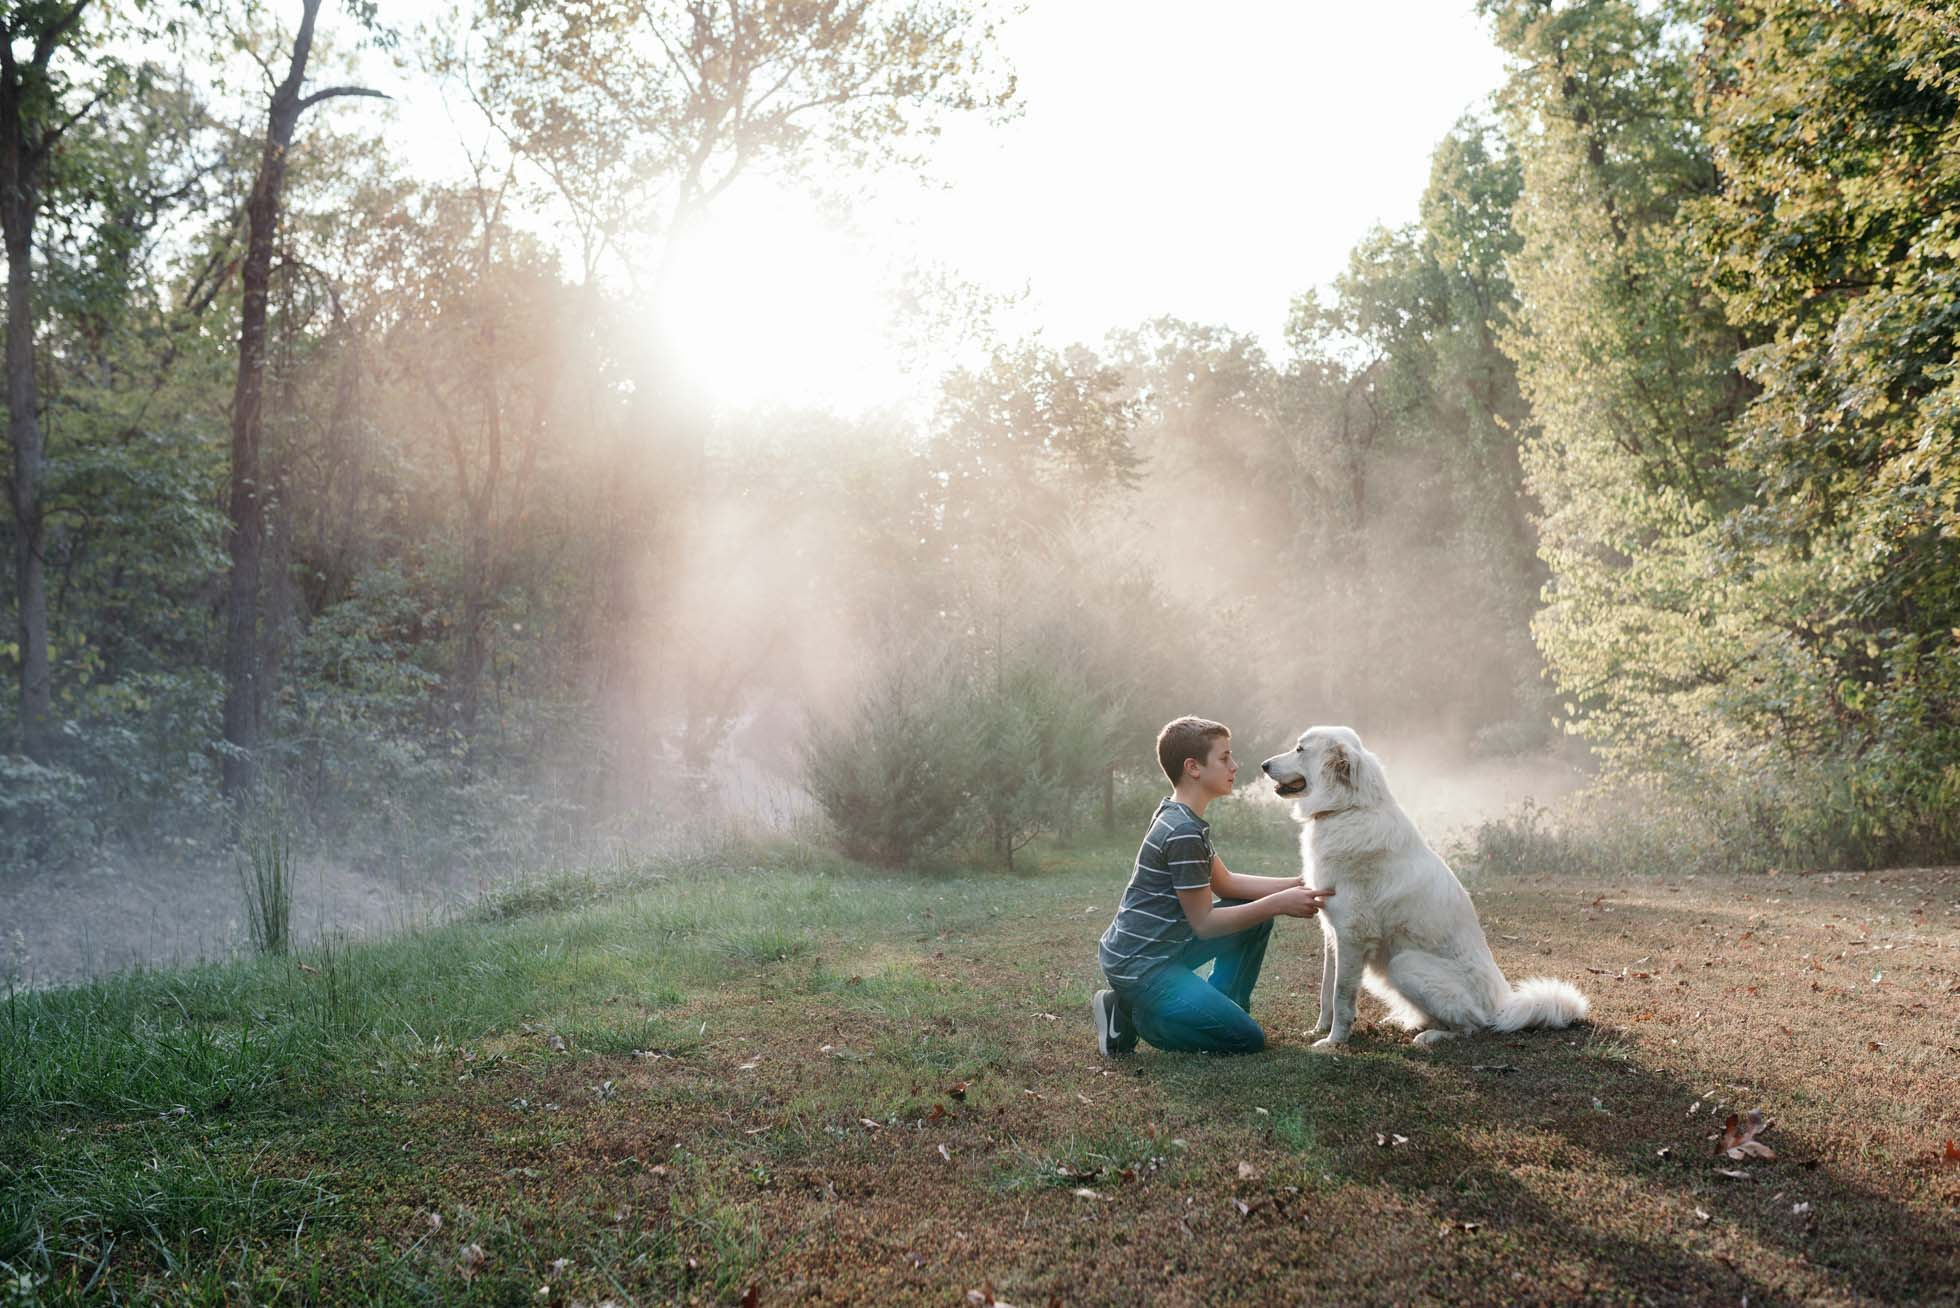 Child, Everyday, Family, Lifestyle, Nature, Pet by Angee Manns with Sigma 35mm f/1.4 DG HSM Art